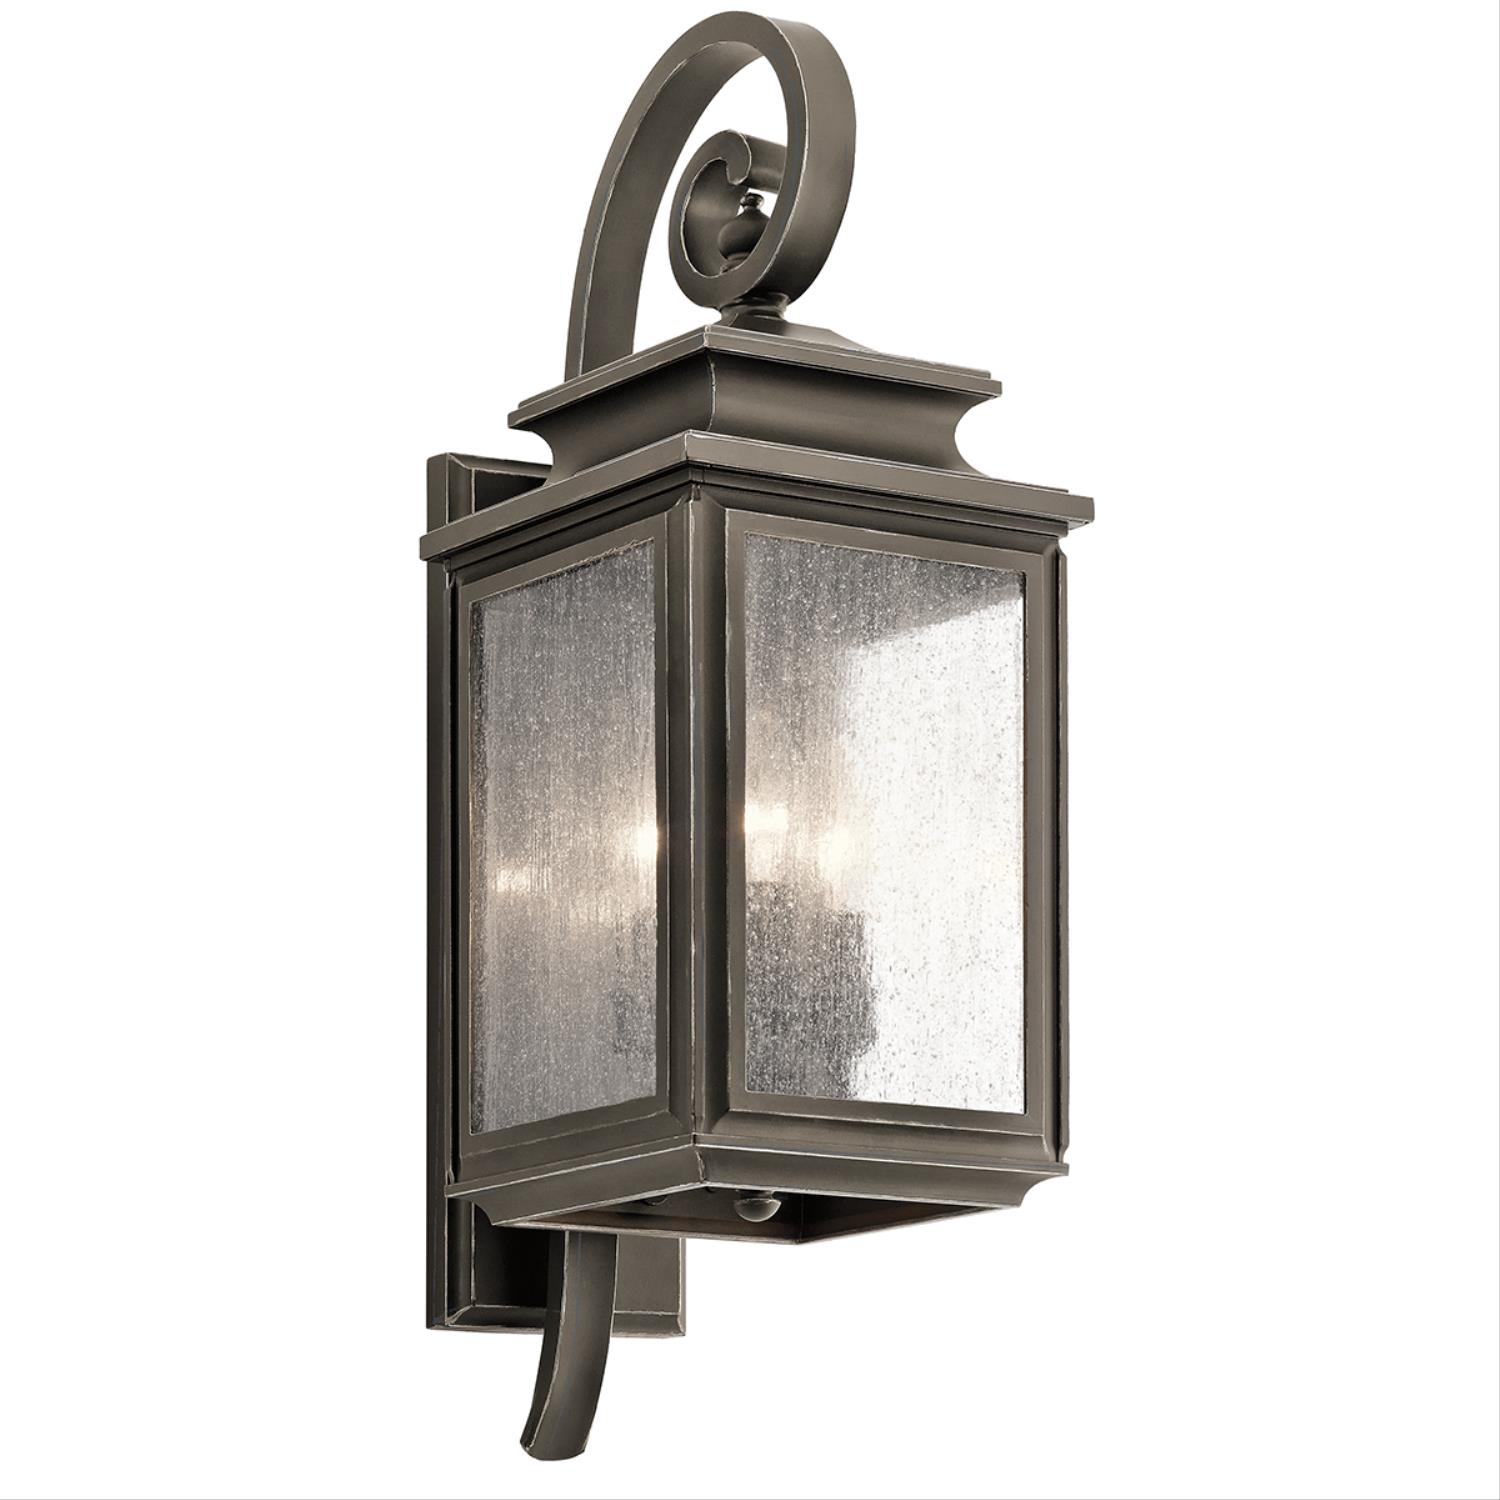 Primary image for Kichler 49502OZ Wiscombe Park Outdoor Wall Sconces 8in Olde Bronze 3-light